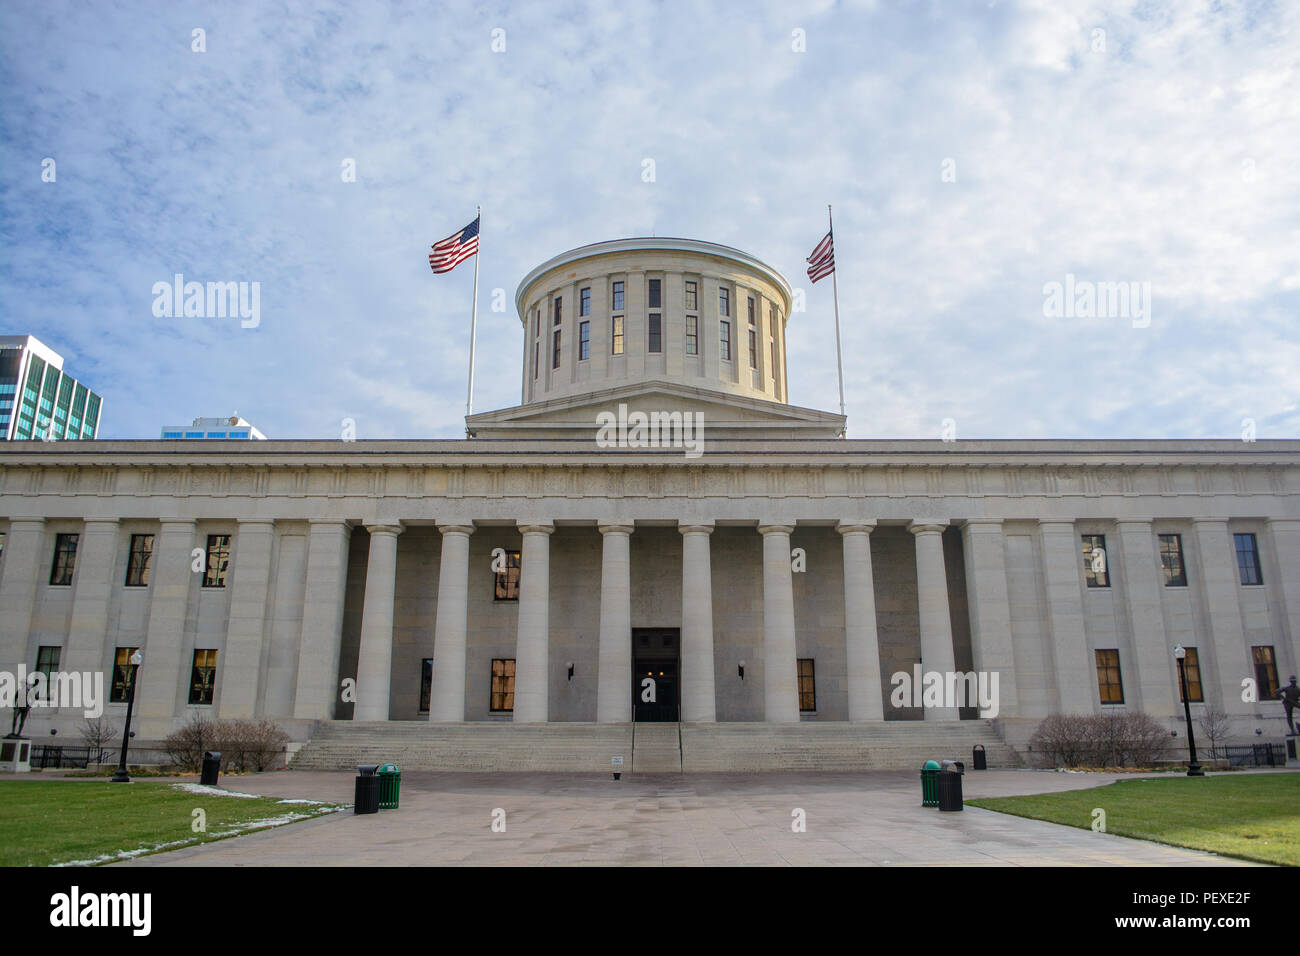 Ohio Statehouse State Capitol Building During the Day - Stock Image